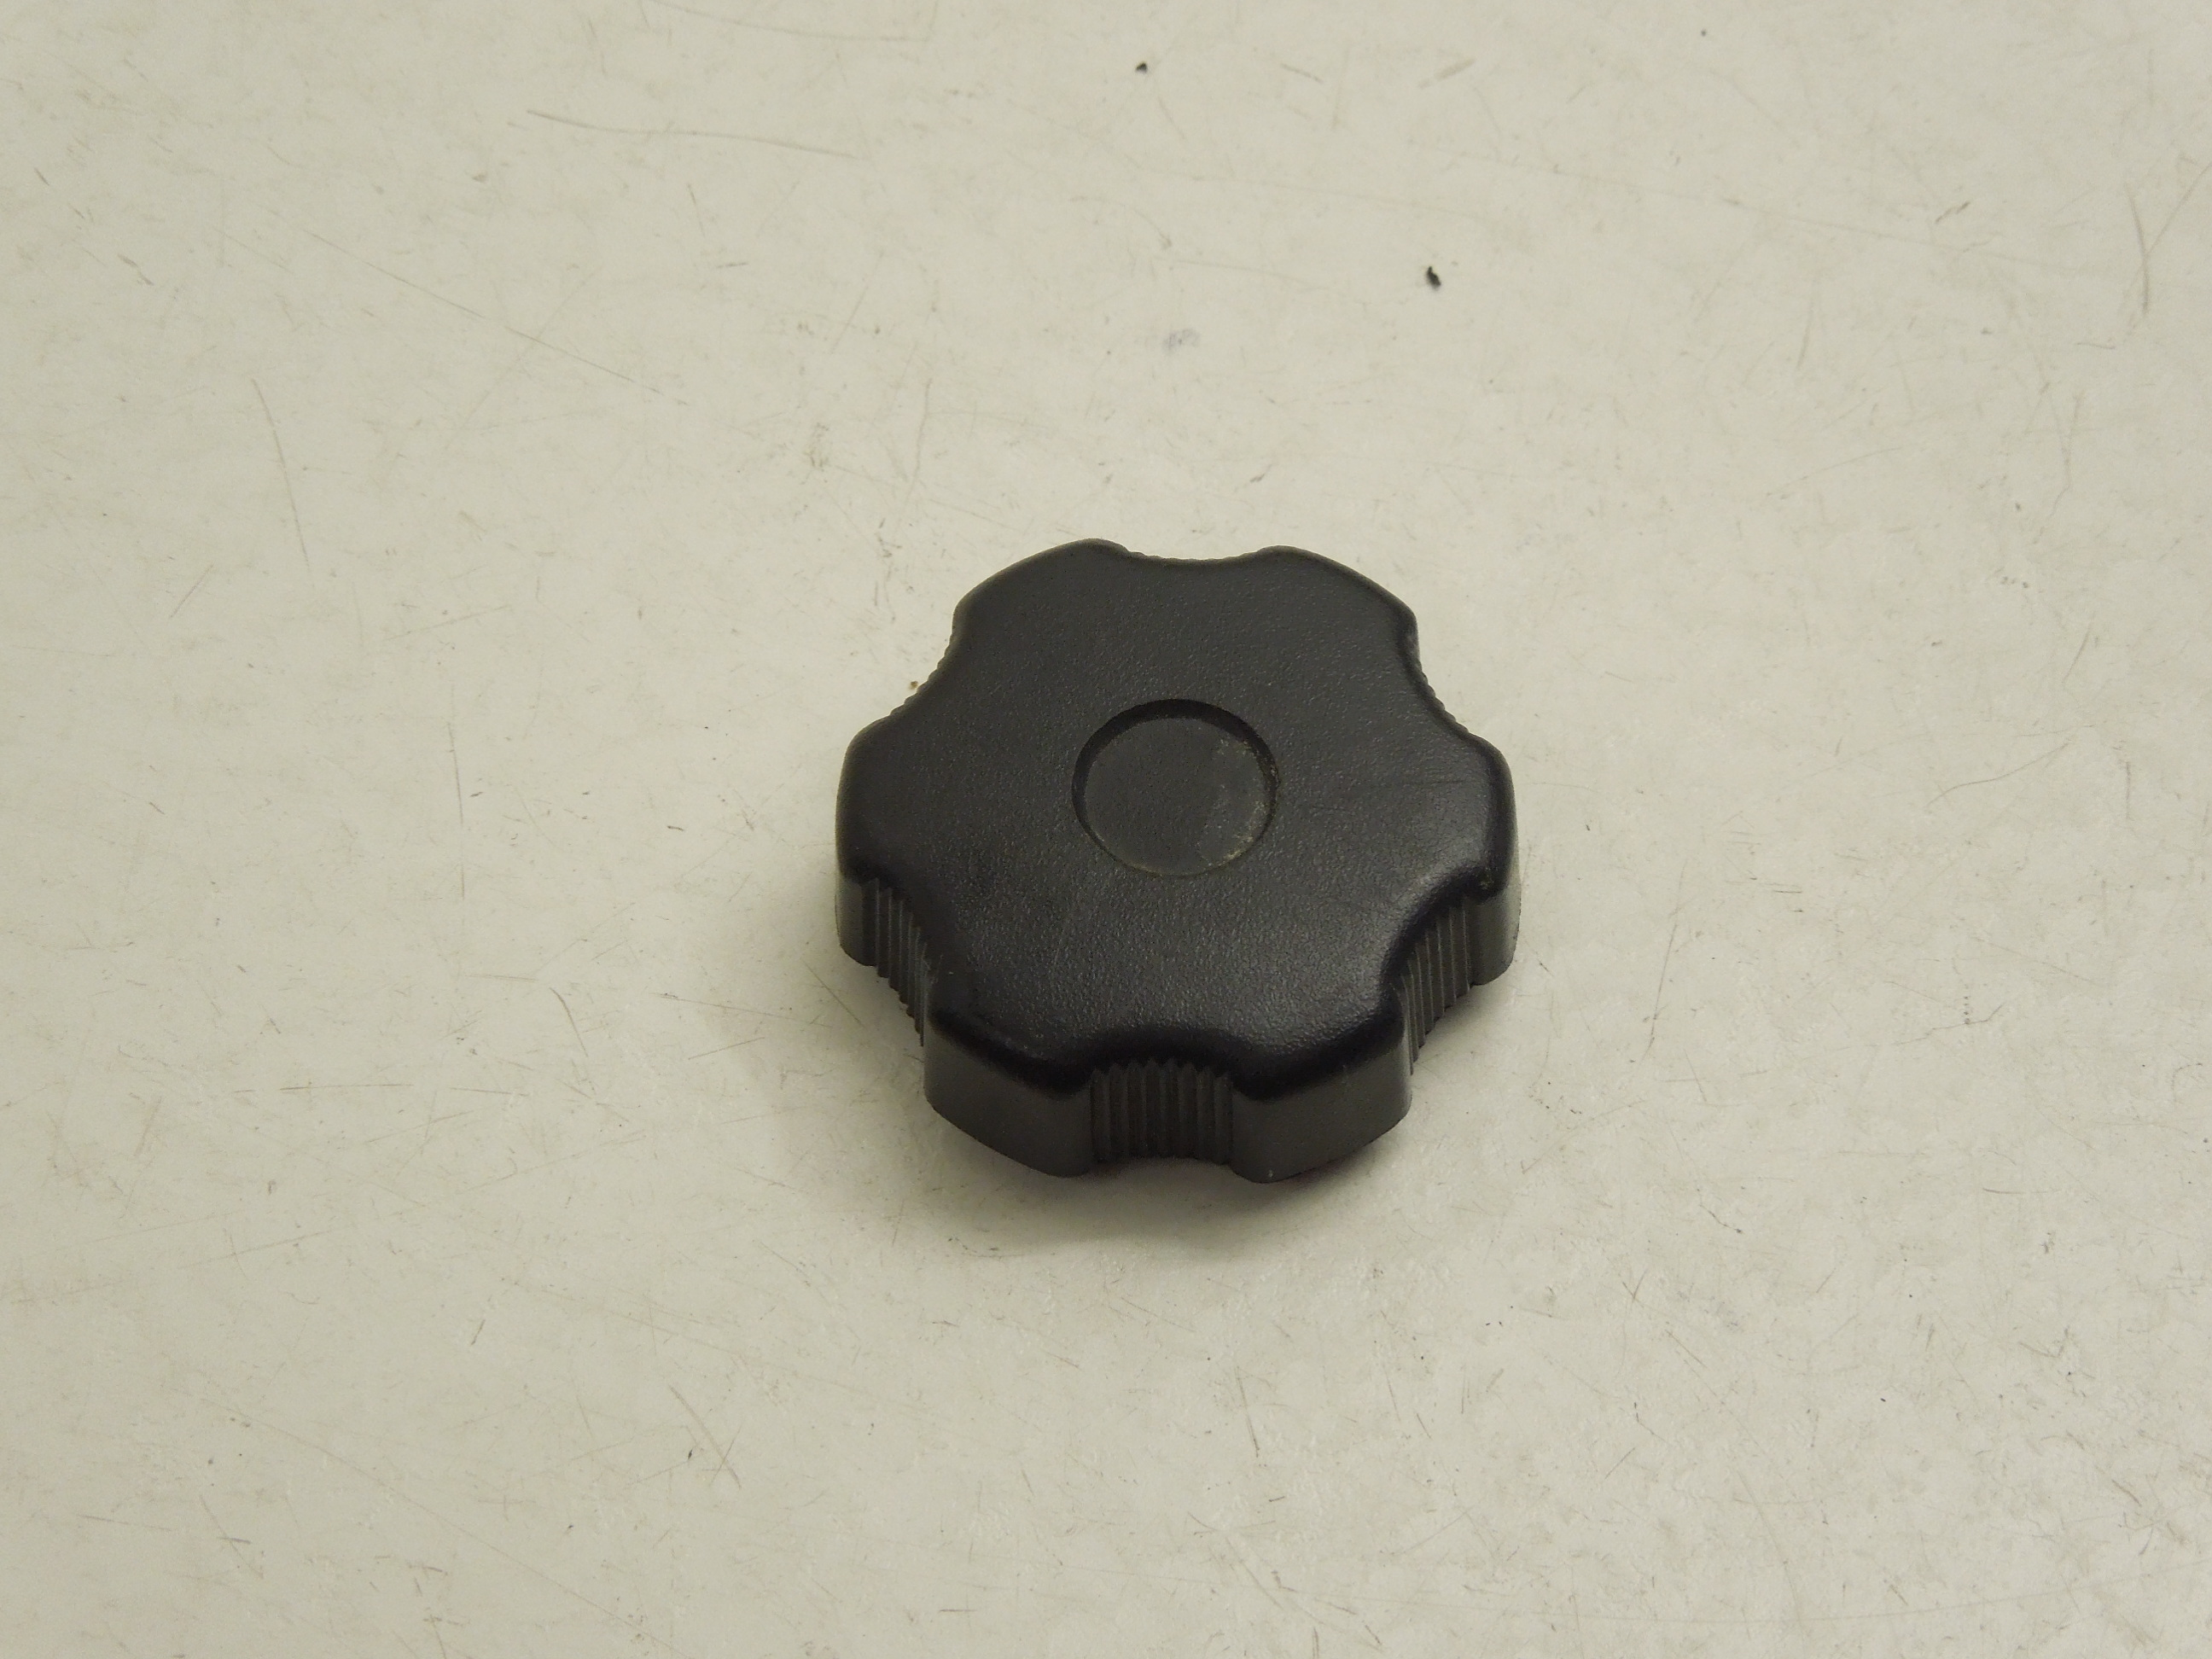 Audi A8 D2 Drivers Fuse Box Cover Knob Black 441863526c Ebay A6 3 0 Tdi Image Is Loading